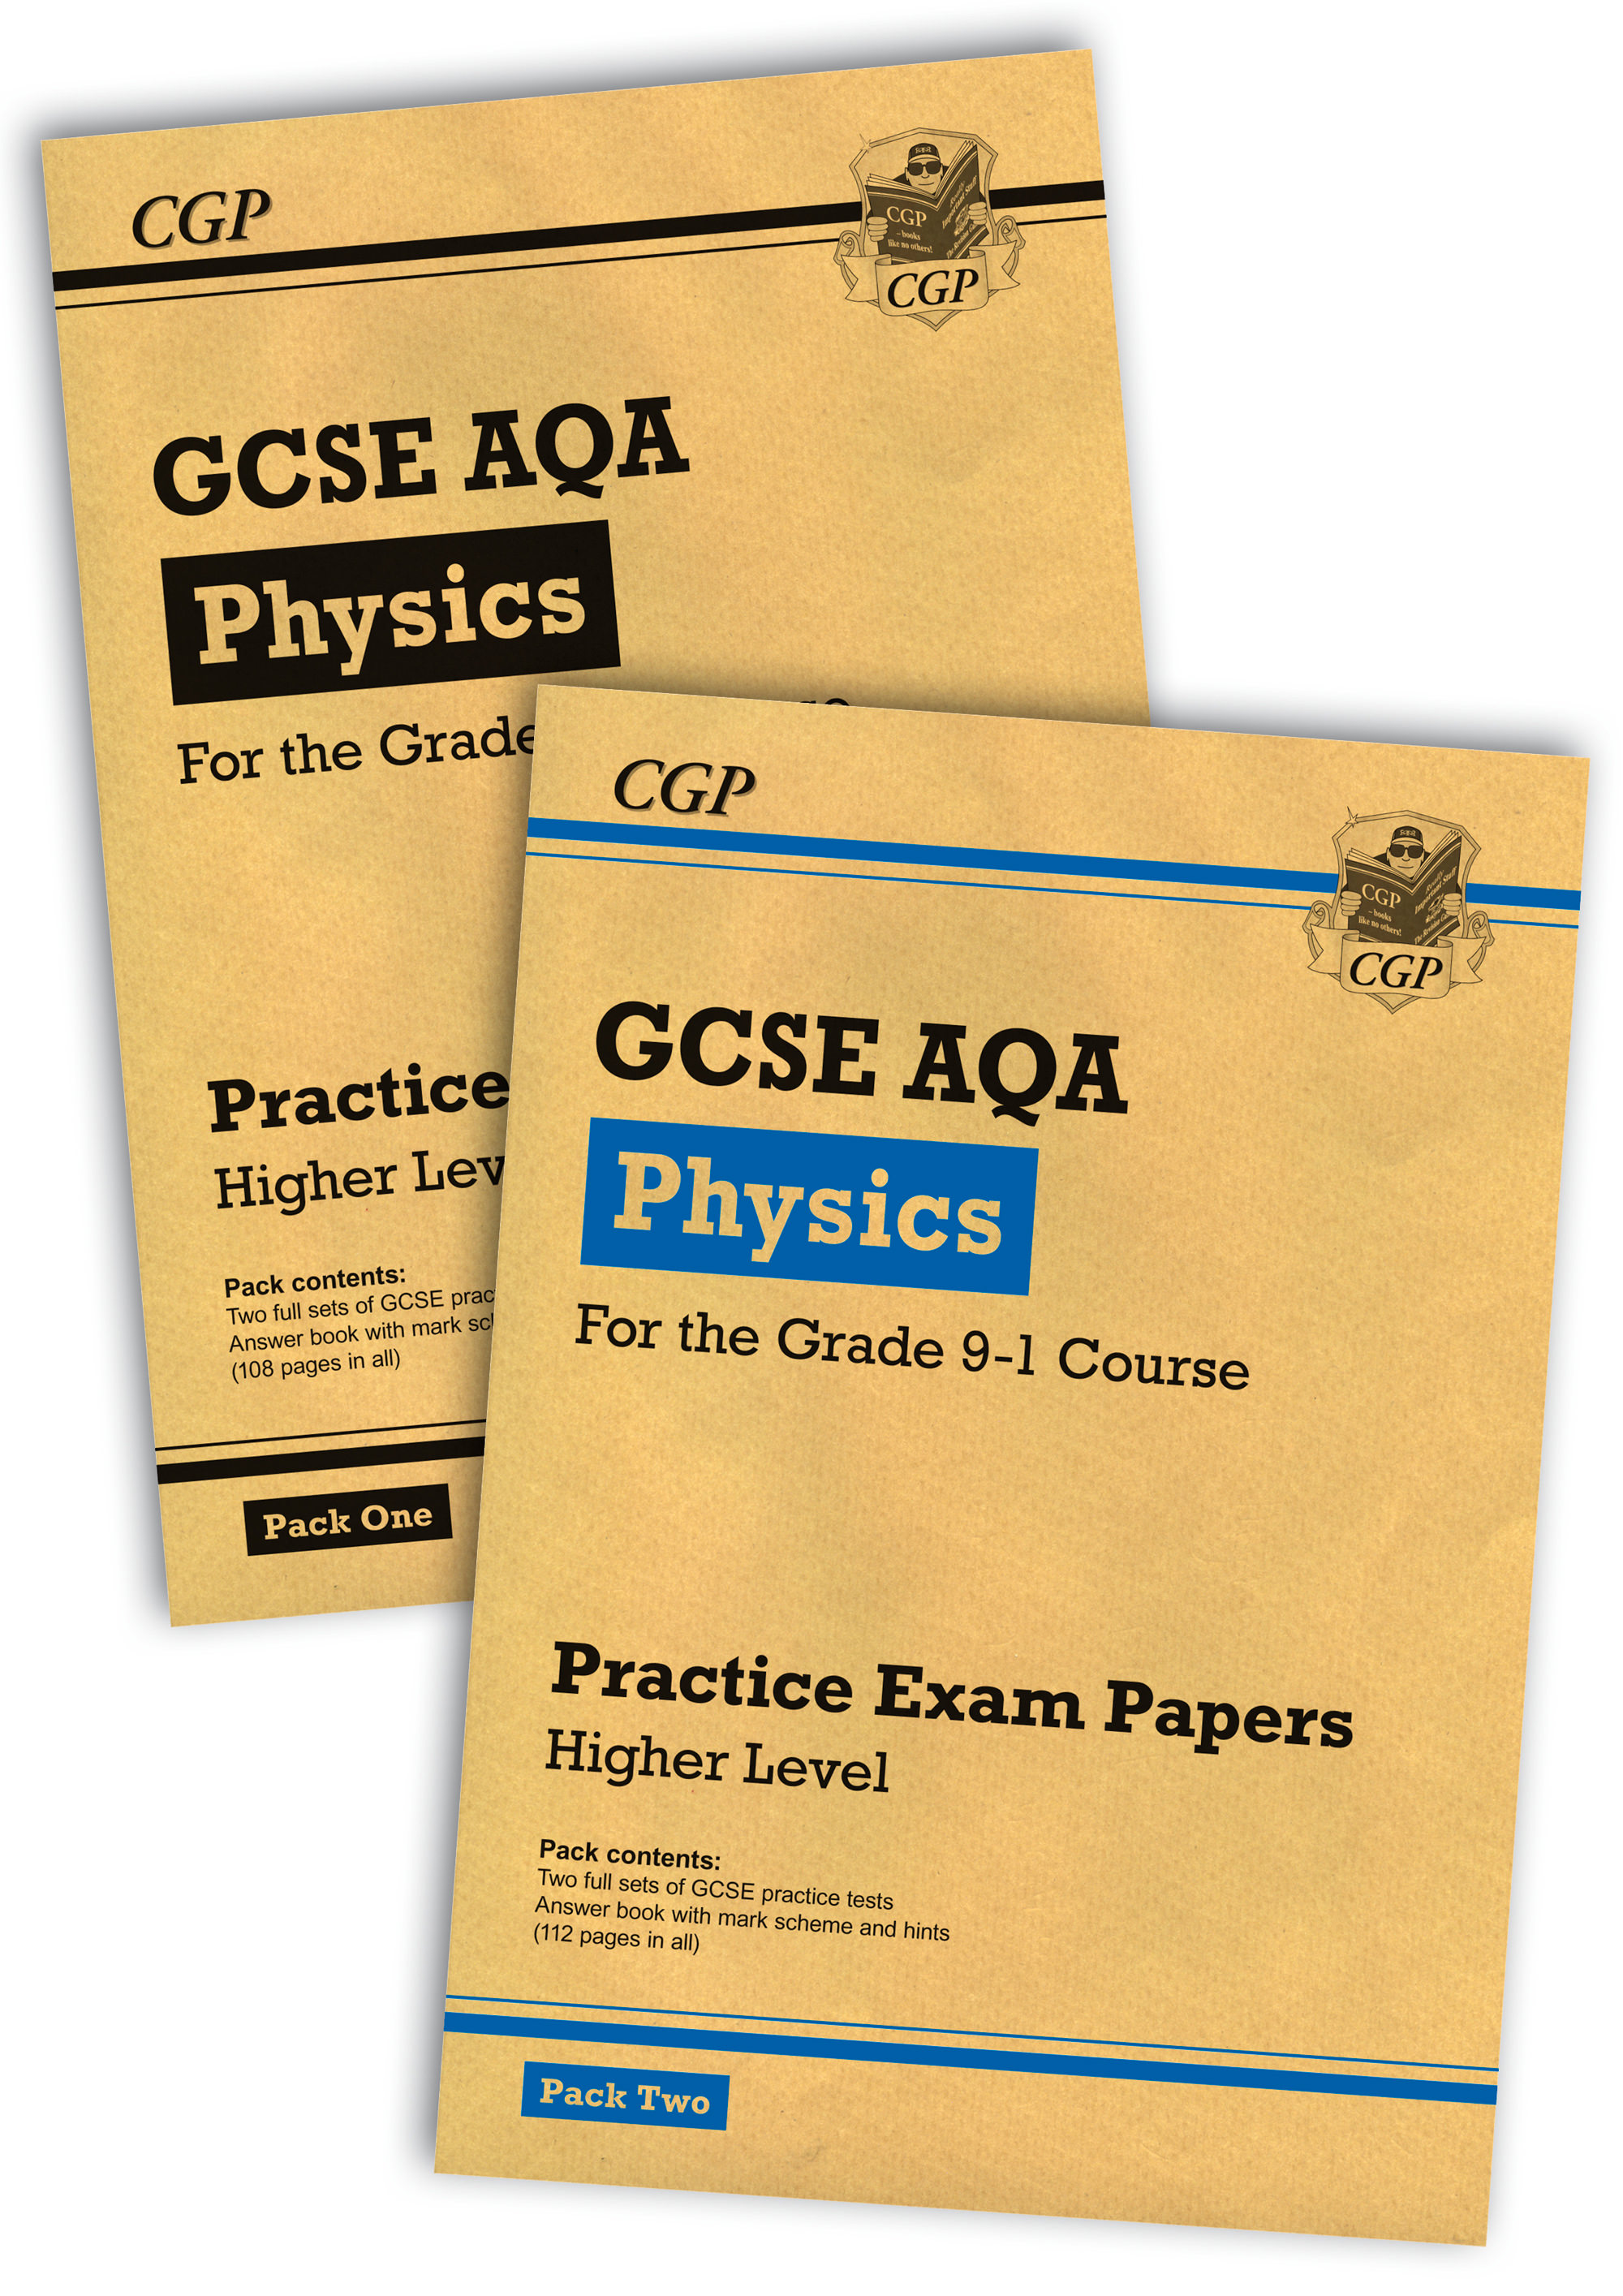 PAHBP41 - New Grade 9-1 GCSE Physics AQA Practice Papers: Higher Pack 1 & 2 Bundle